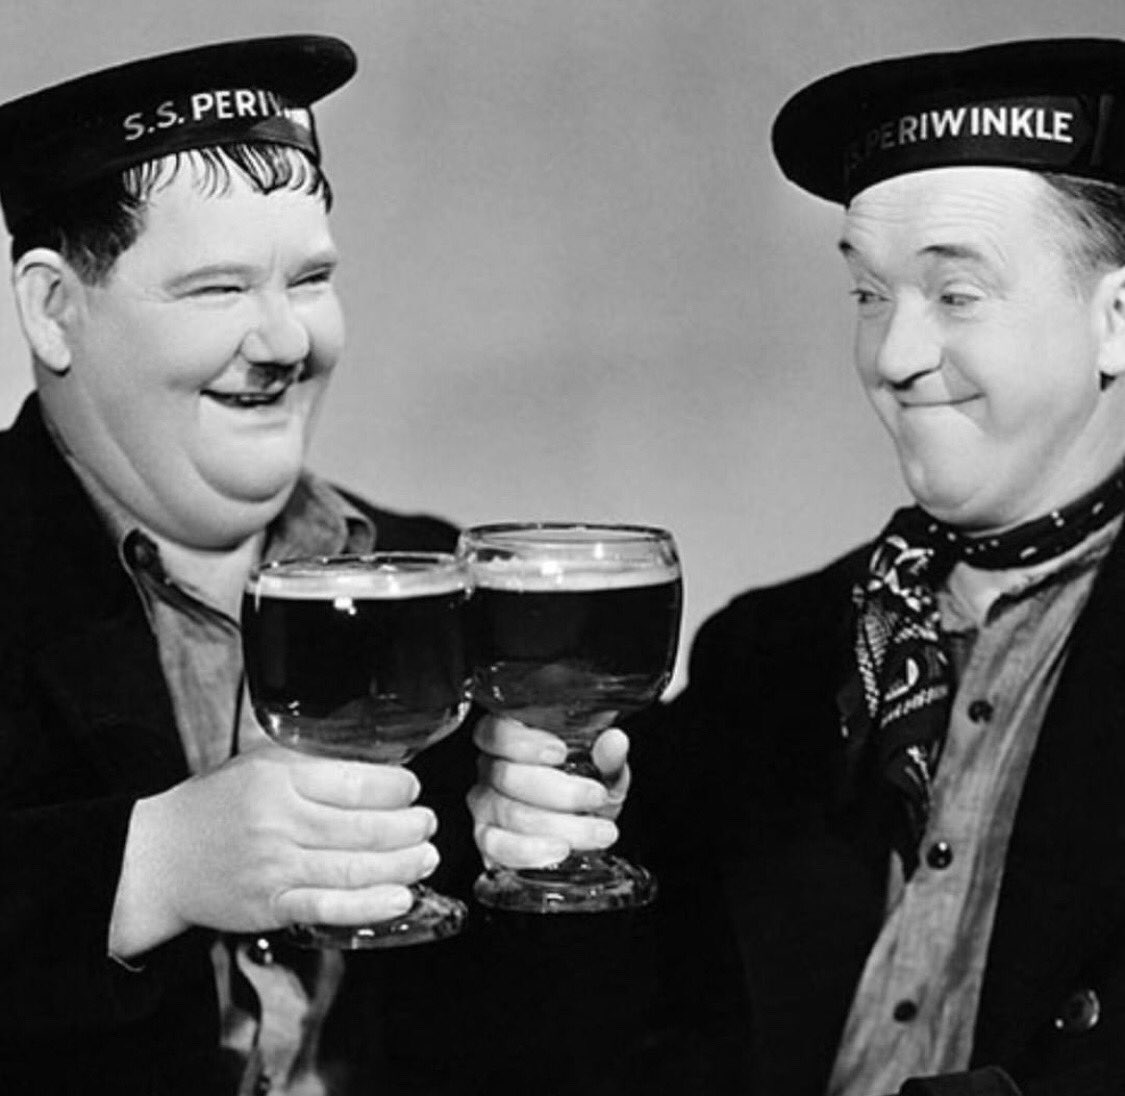 As a child I thought of them as my funny uncles.